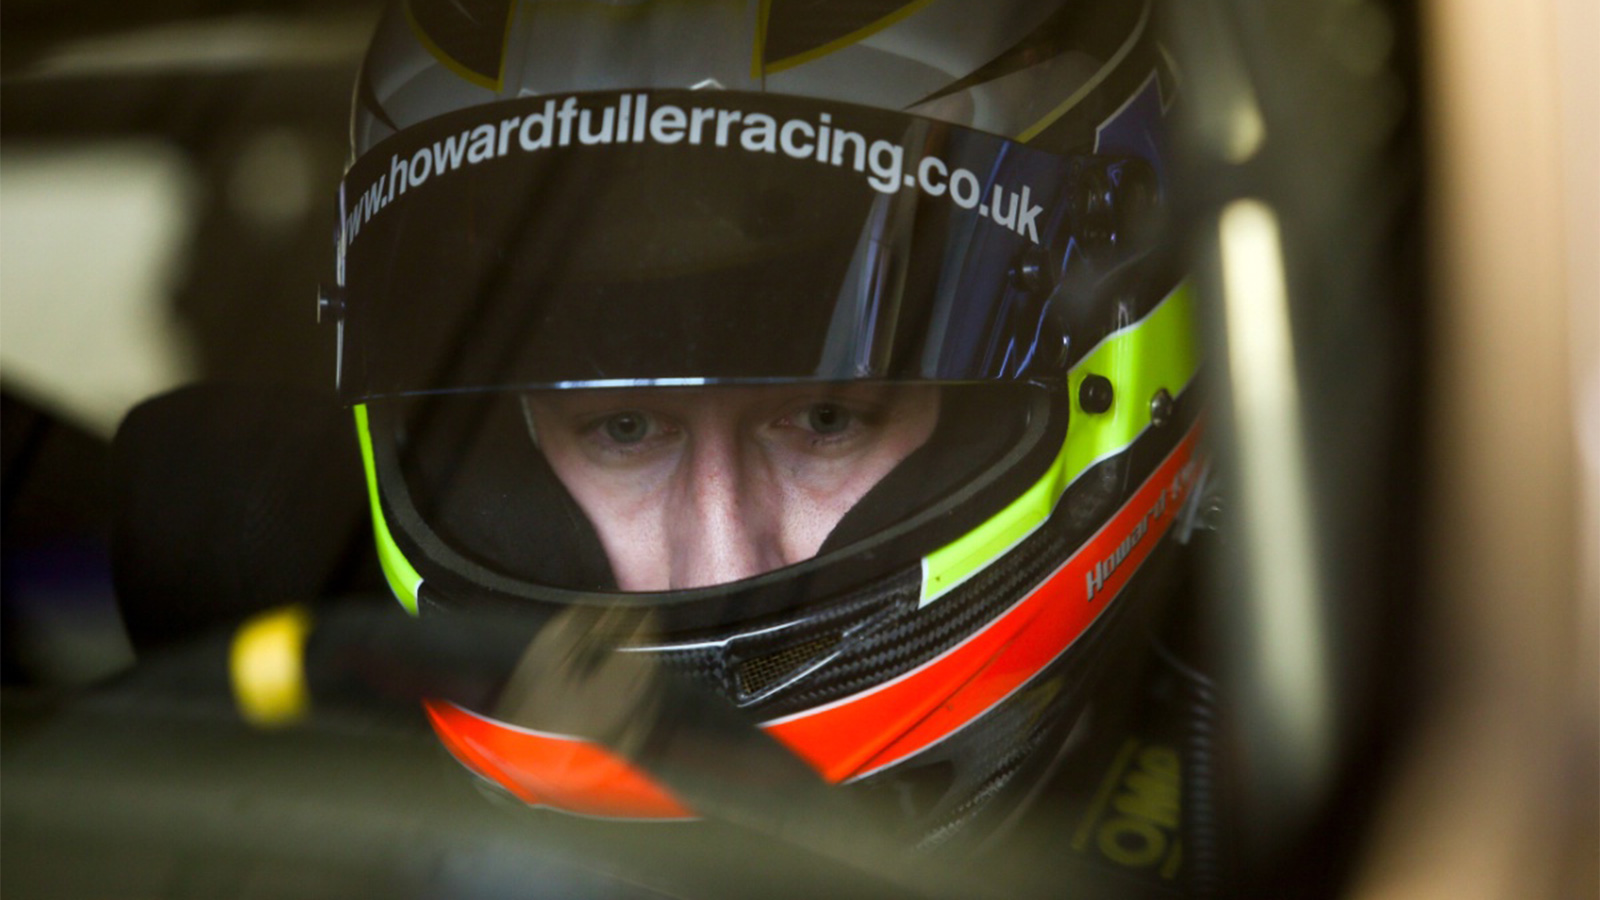 Howard Fuller to pilot SWR's Honda Civic Type-R in TCR UK.